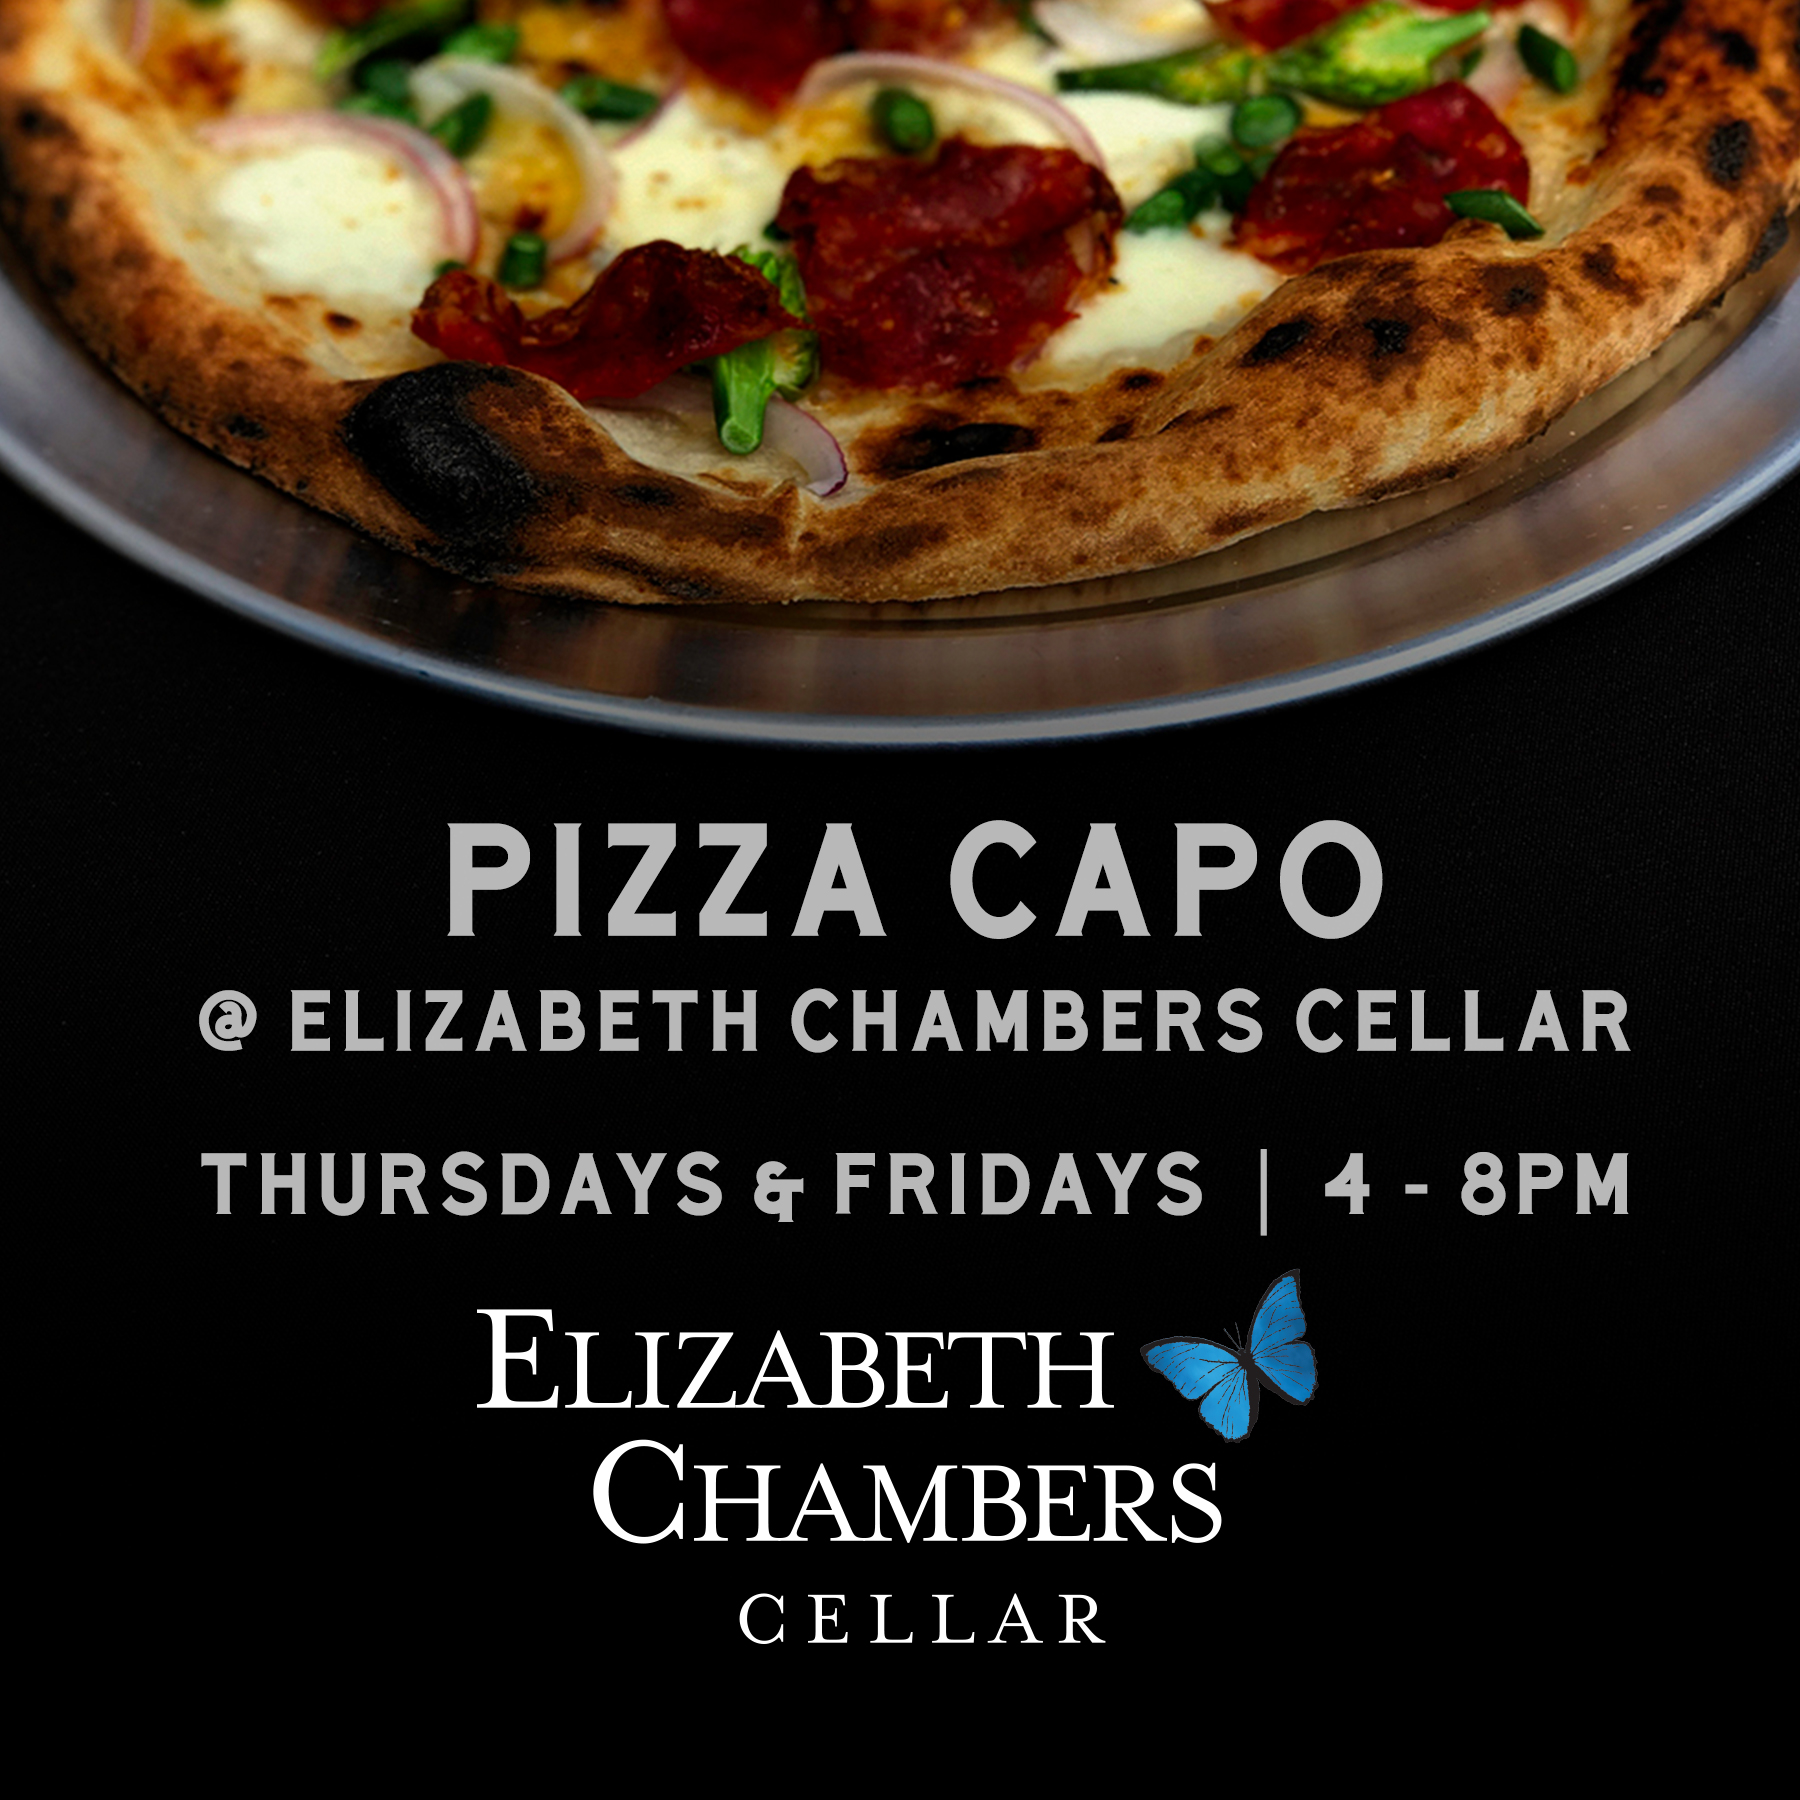 Pizza Capo at Elizabeth Chambers Cellar